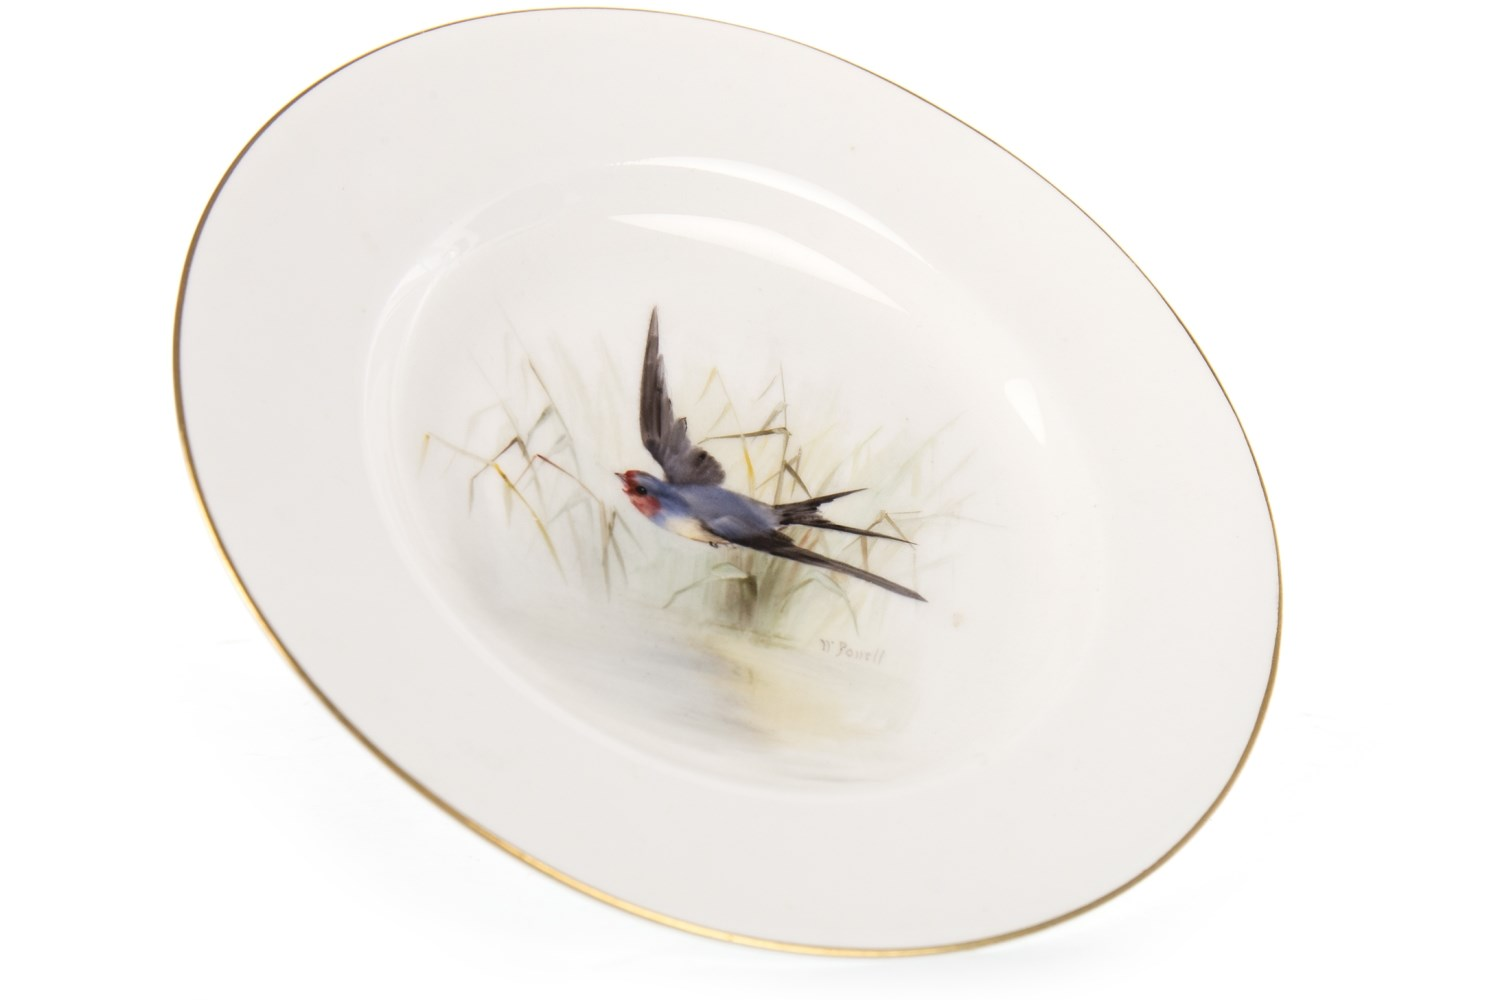 Lot 1272 - A ROYAL WORCESTER PLATE BY WILLIAM POWELL